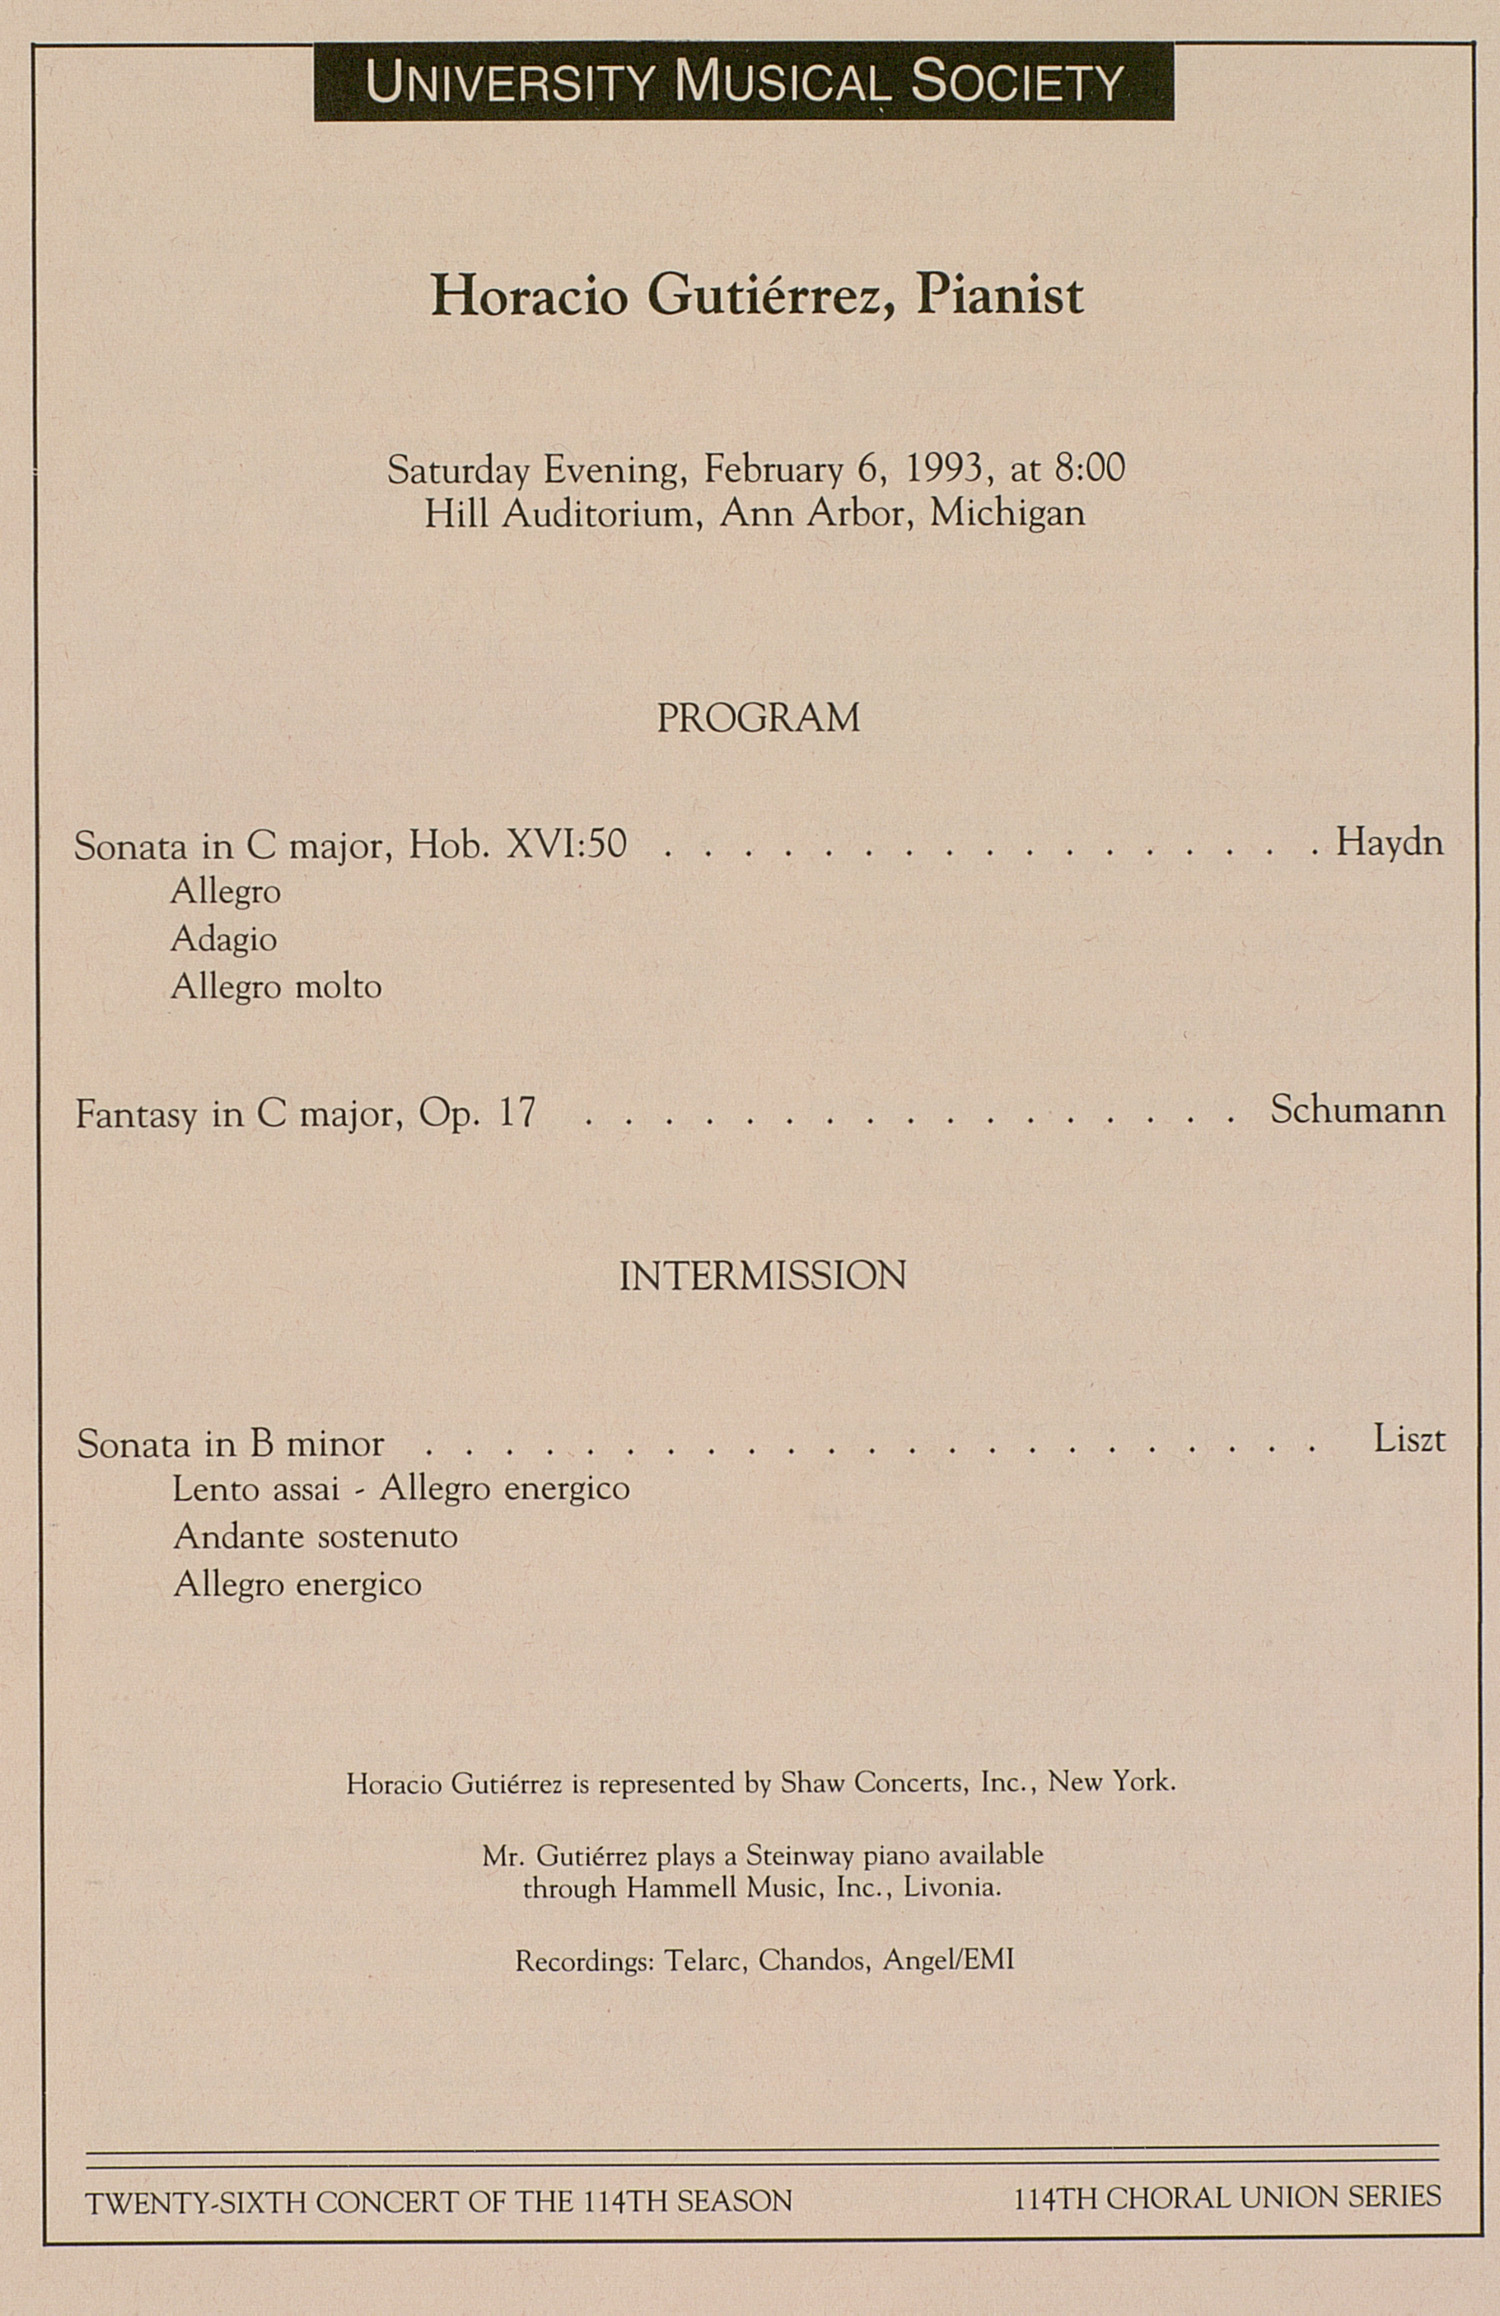 UMS Concert Program, February 6, 1993: University Musical Society --  image